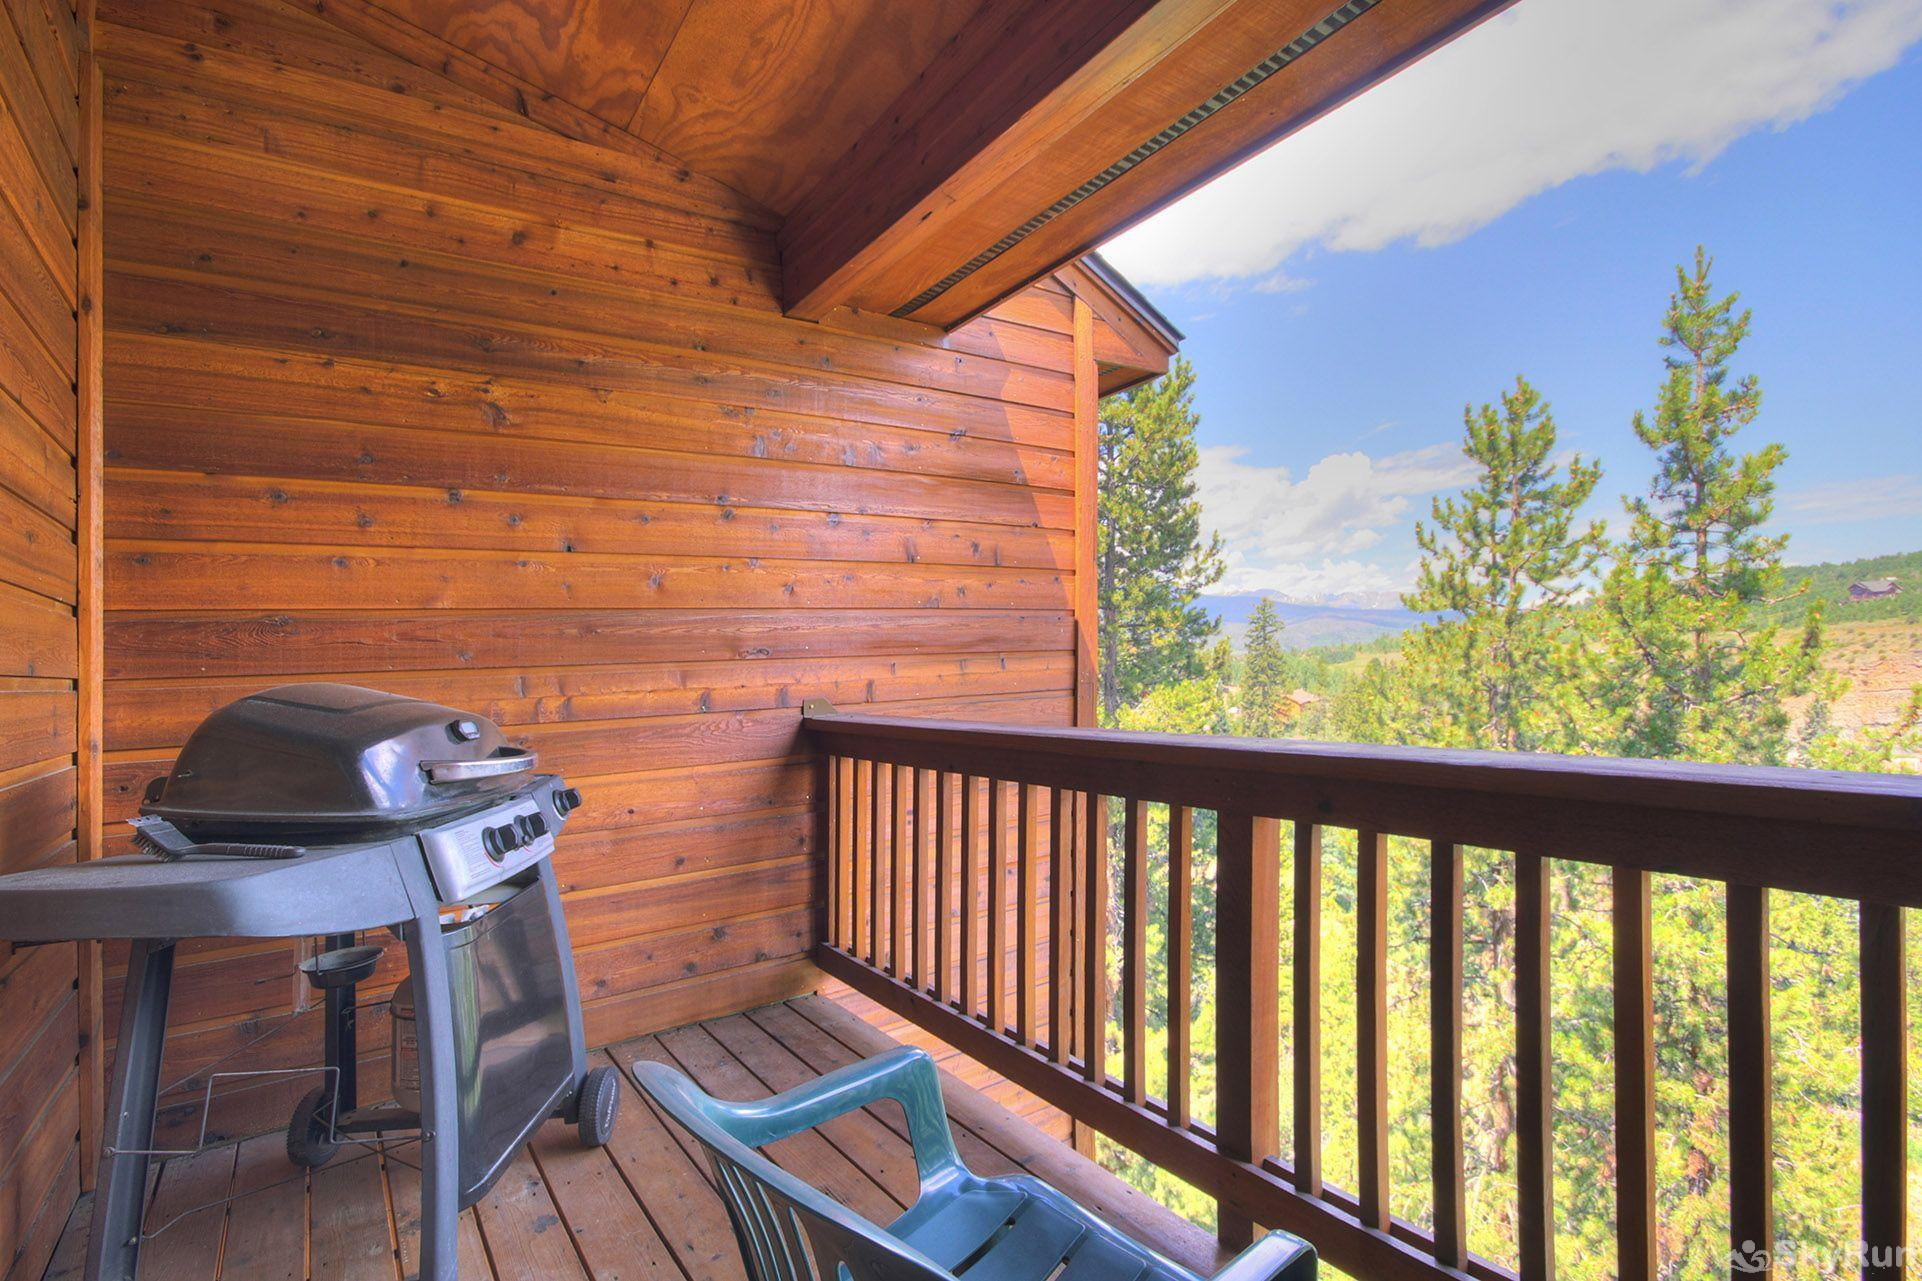 127 Lookout Ridge Private deck with gorgeous views.